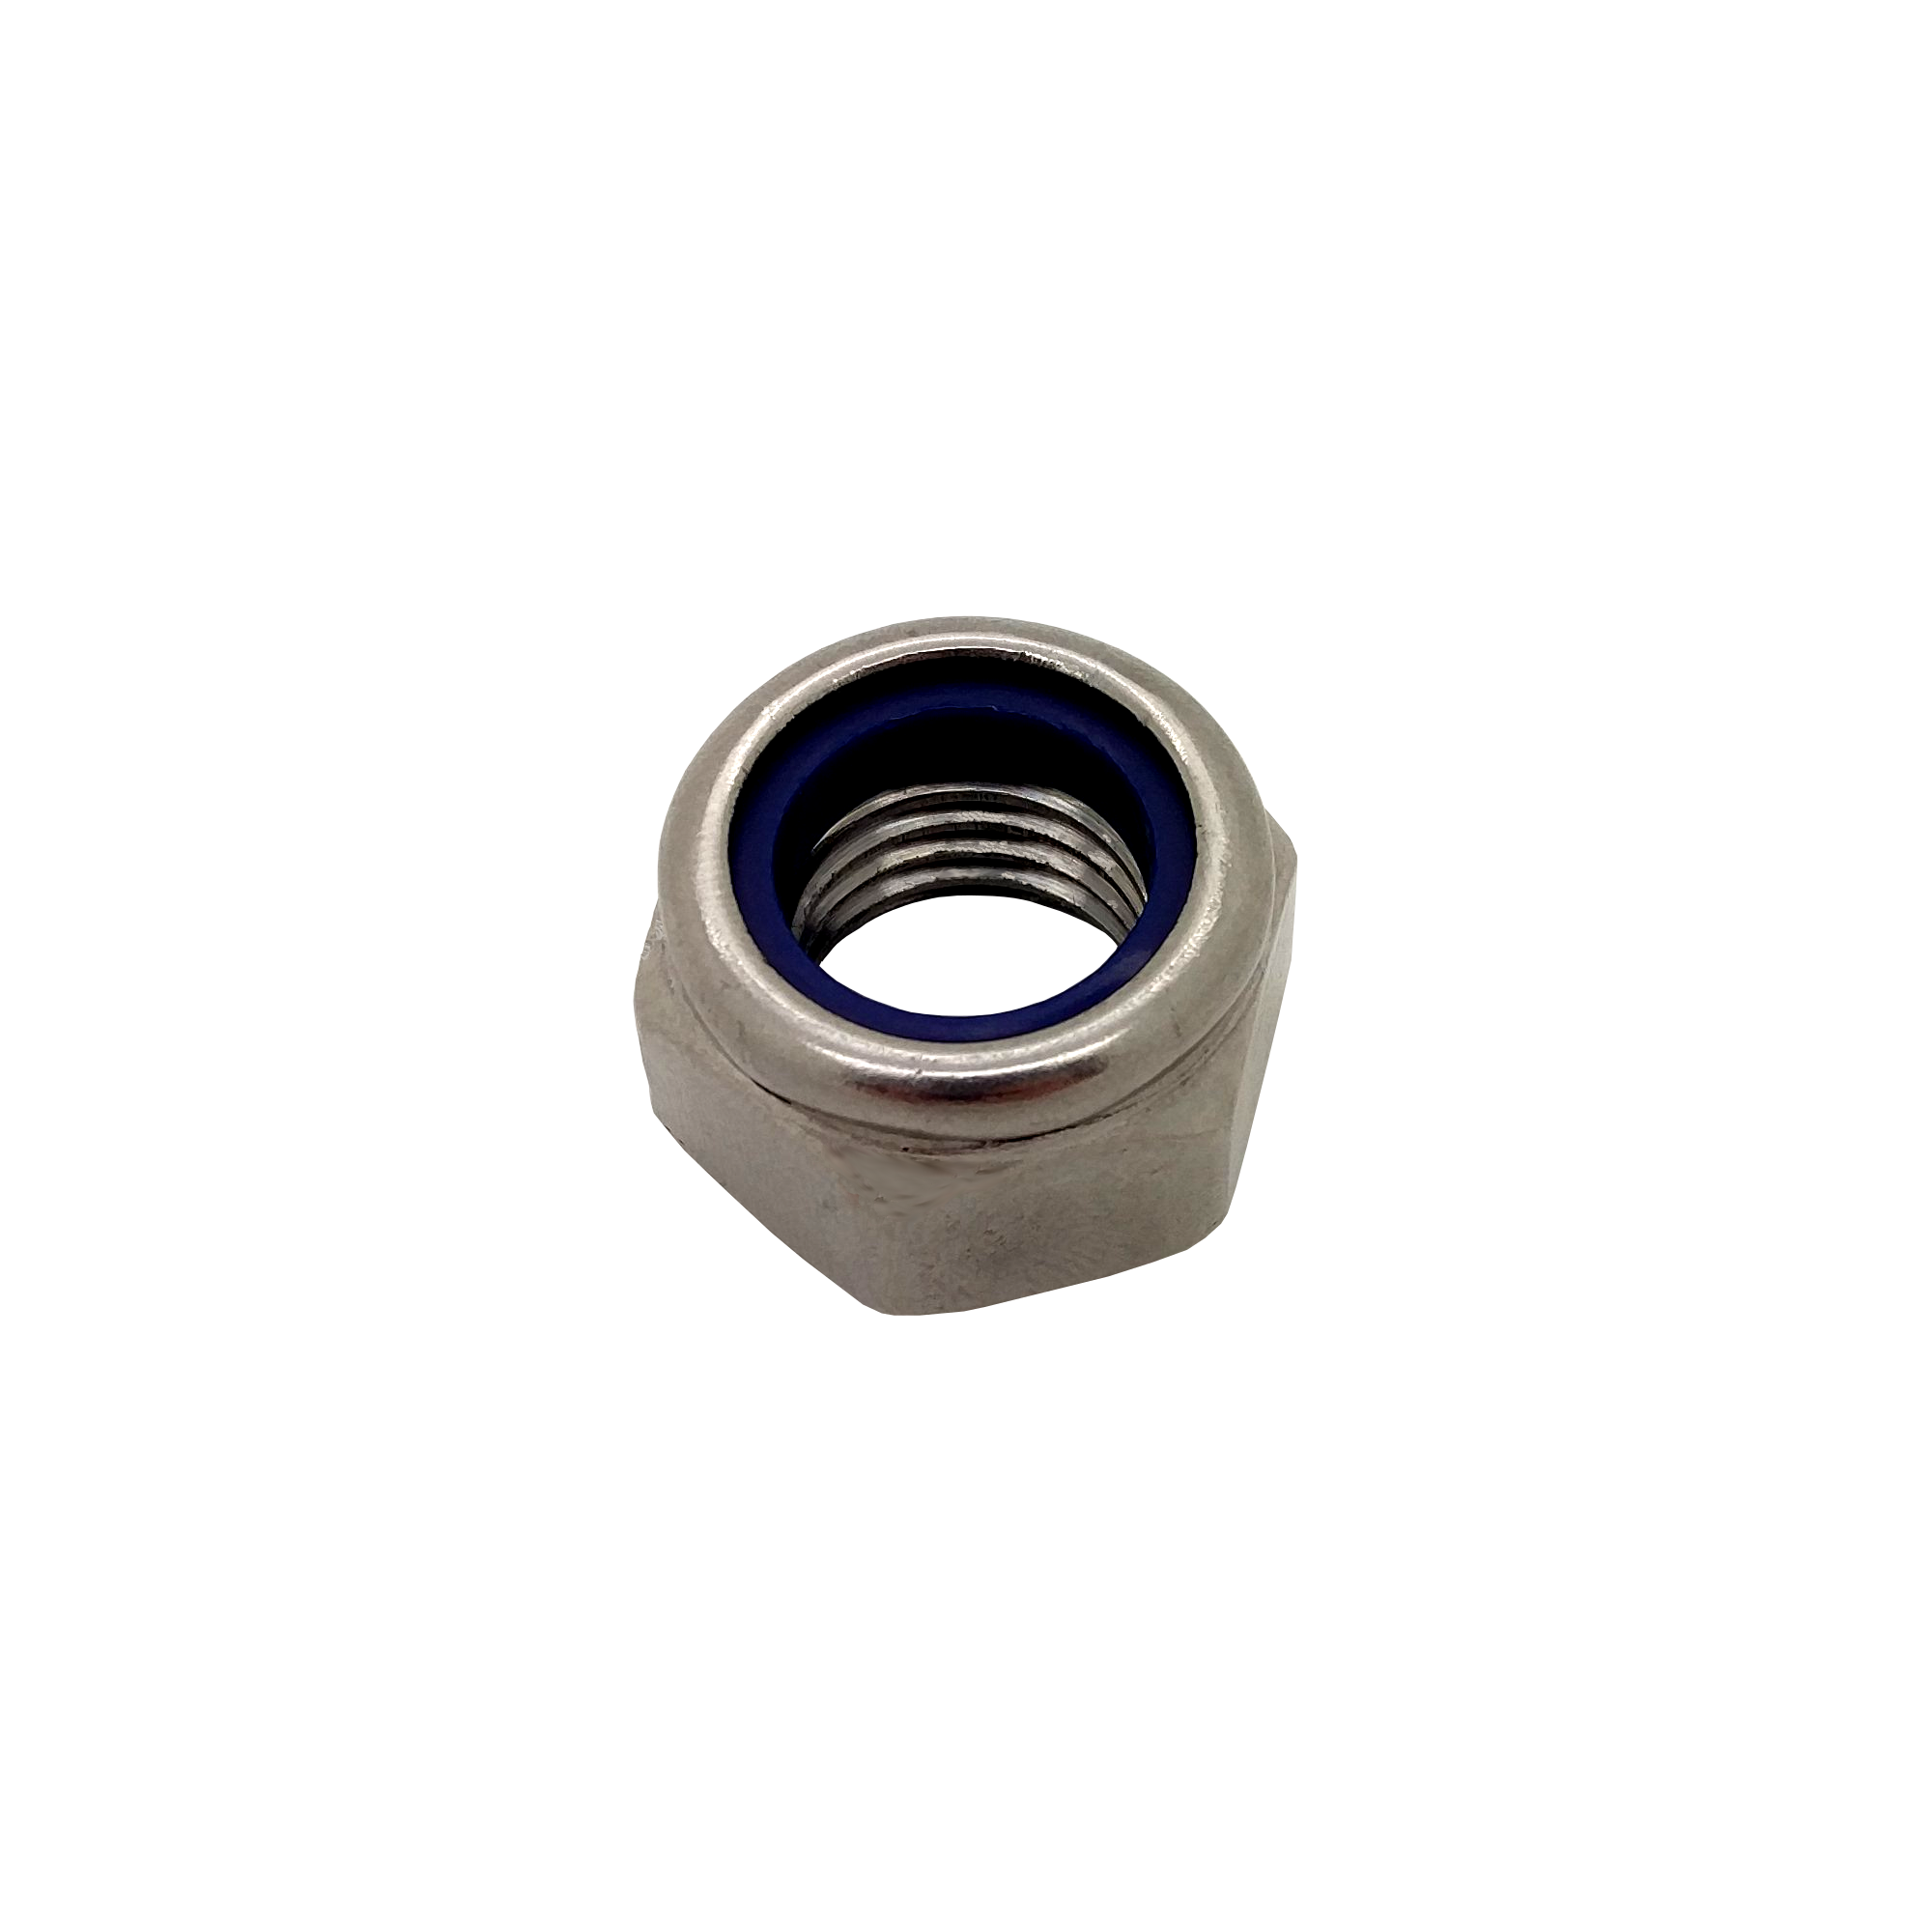 M6 RH Stainless Steel DIN 985 Hexagon Nyloc Lock Nut